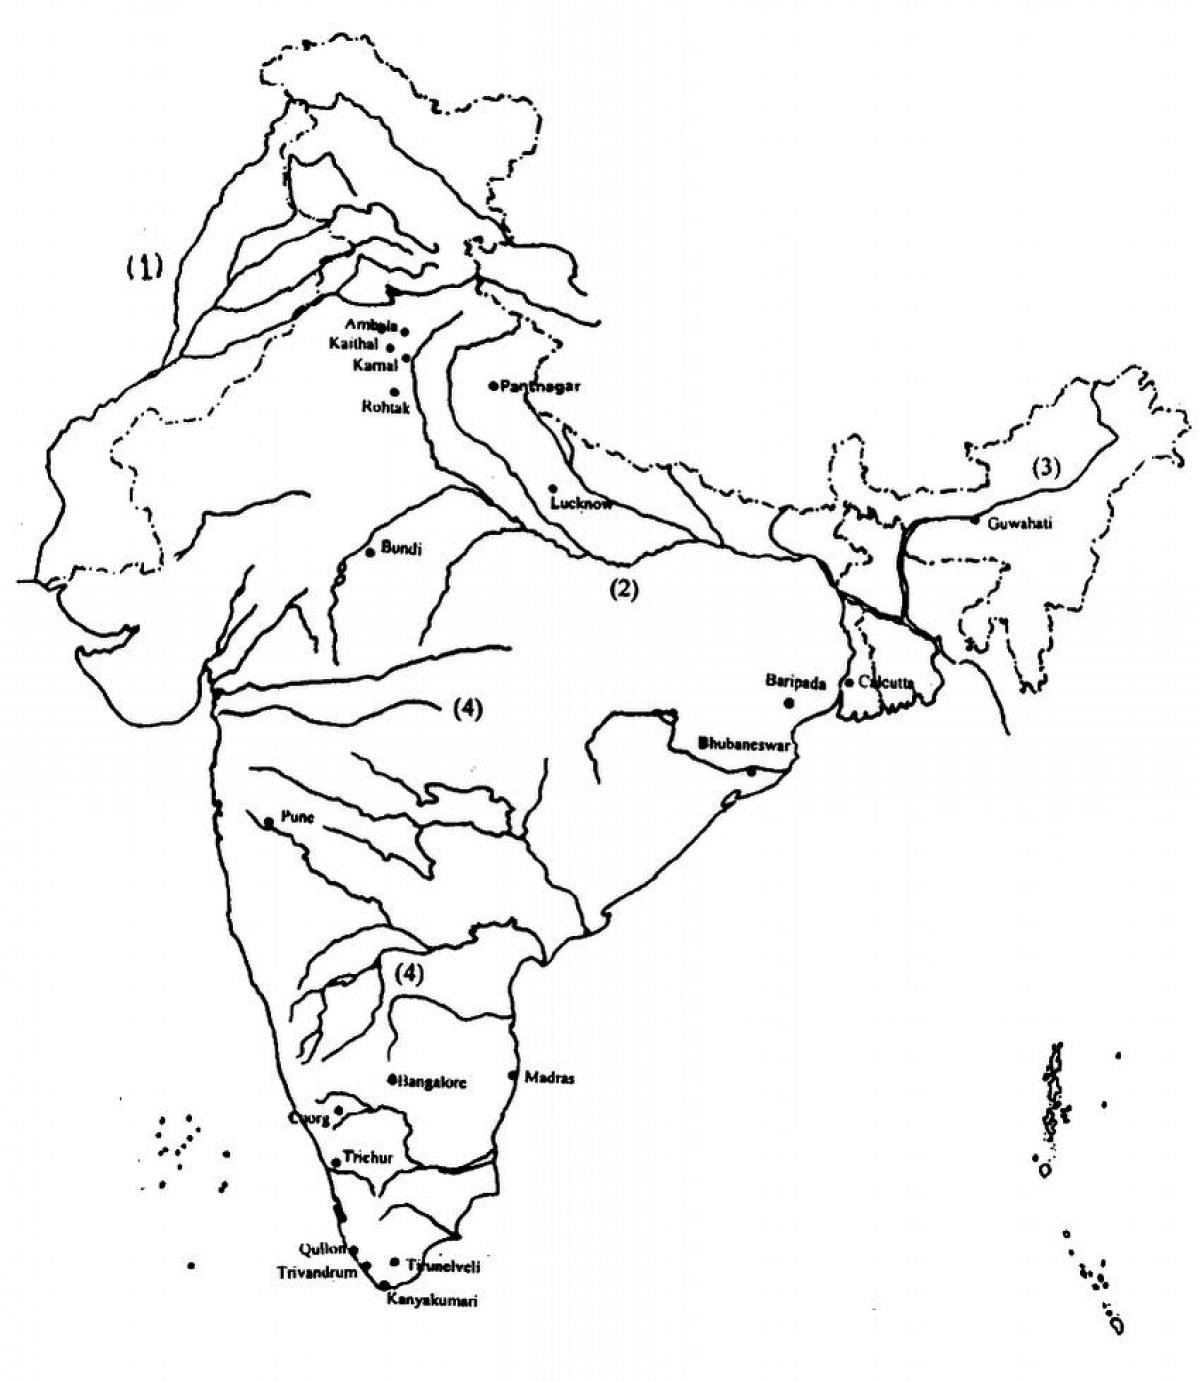 essay on connecting the rivers in india The rivers essay forms an interesting topic for essays the rivers essay has been a very popular choice for essays amongst most students the rivers essay should define the river and speak about its history.